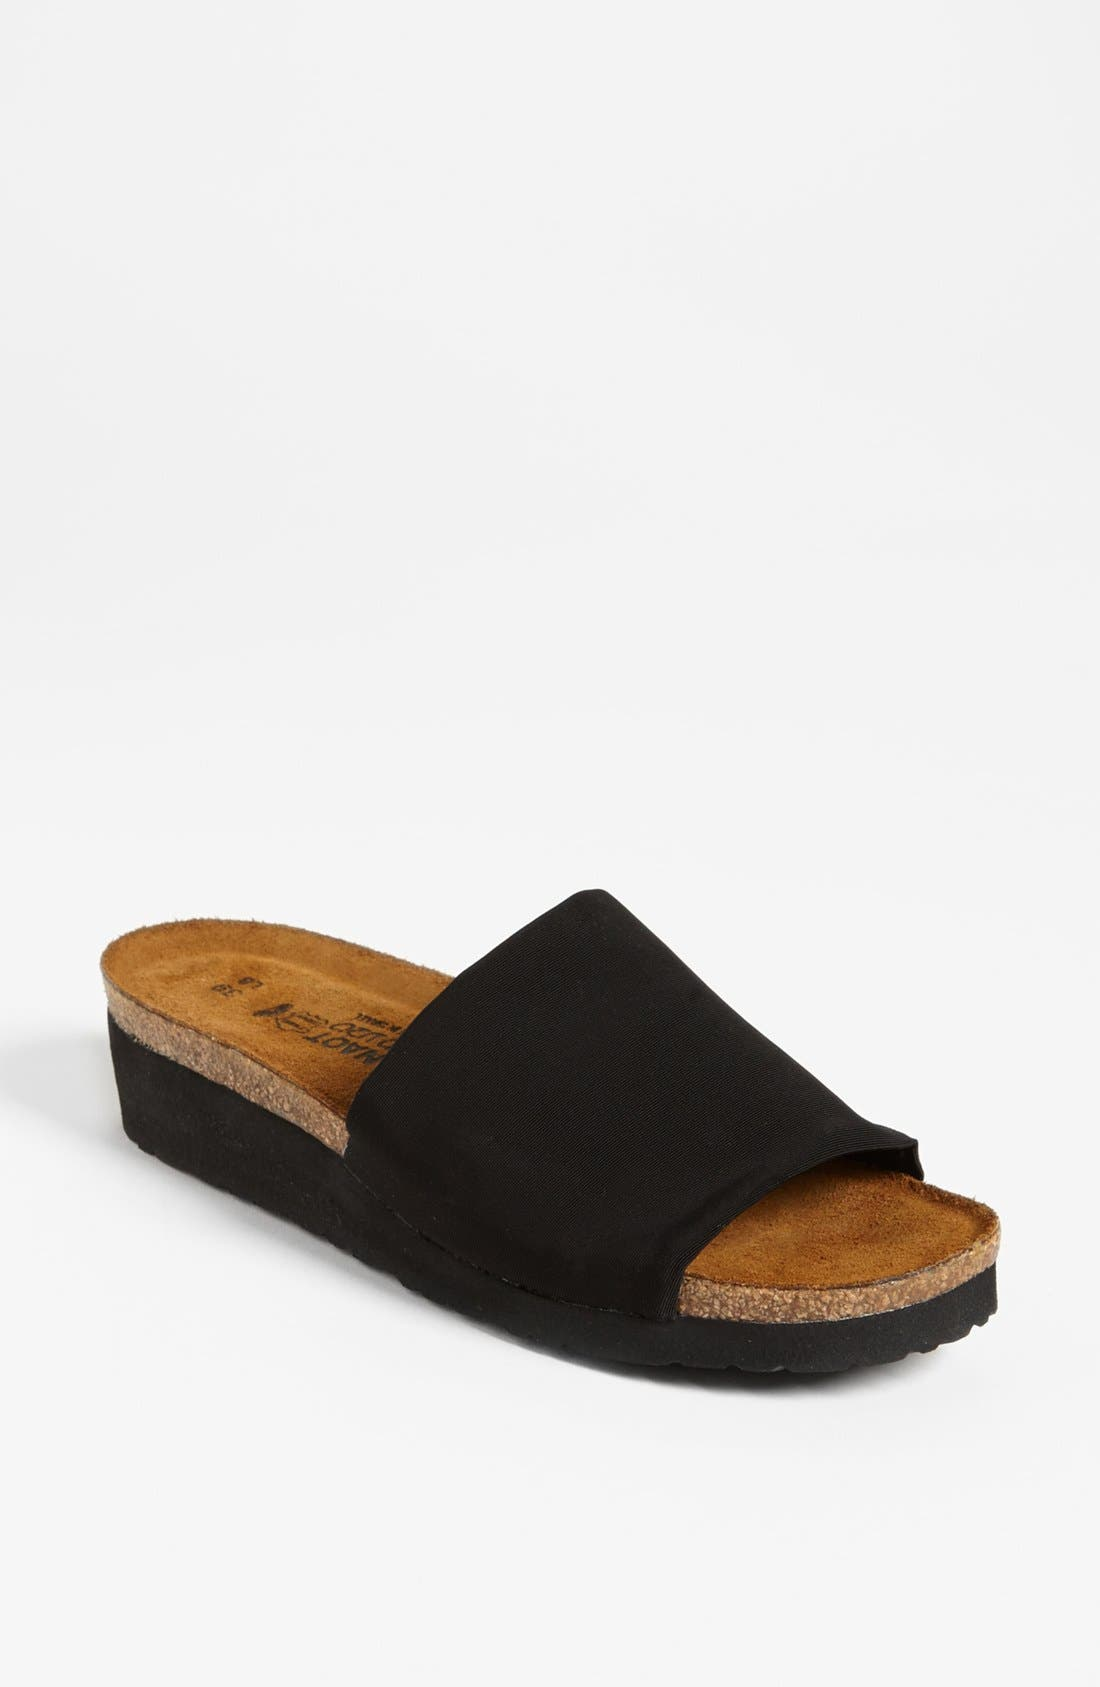 'Alana' Sandal,                             Main thumbnail 1, color,                             Black Stretch